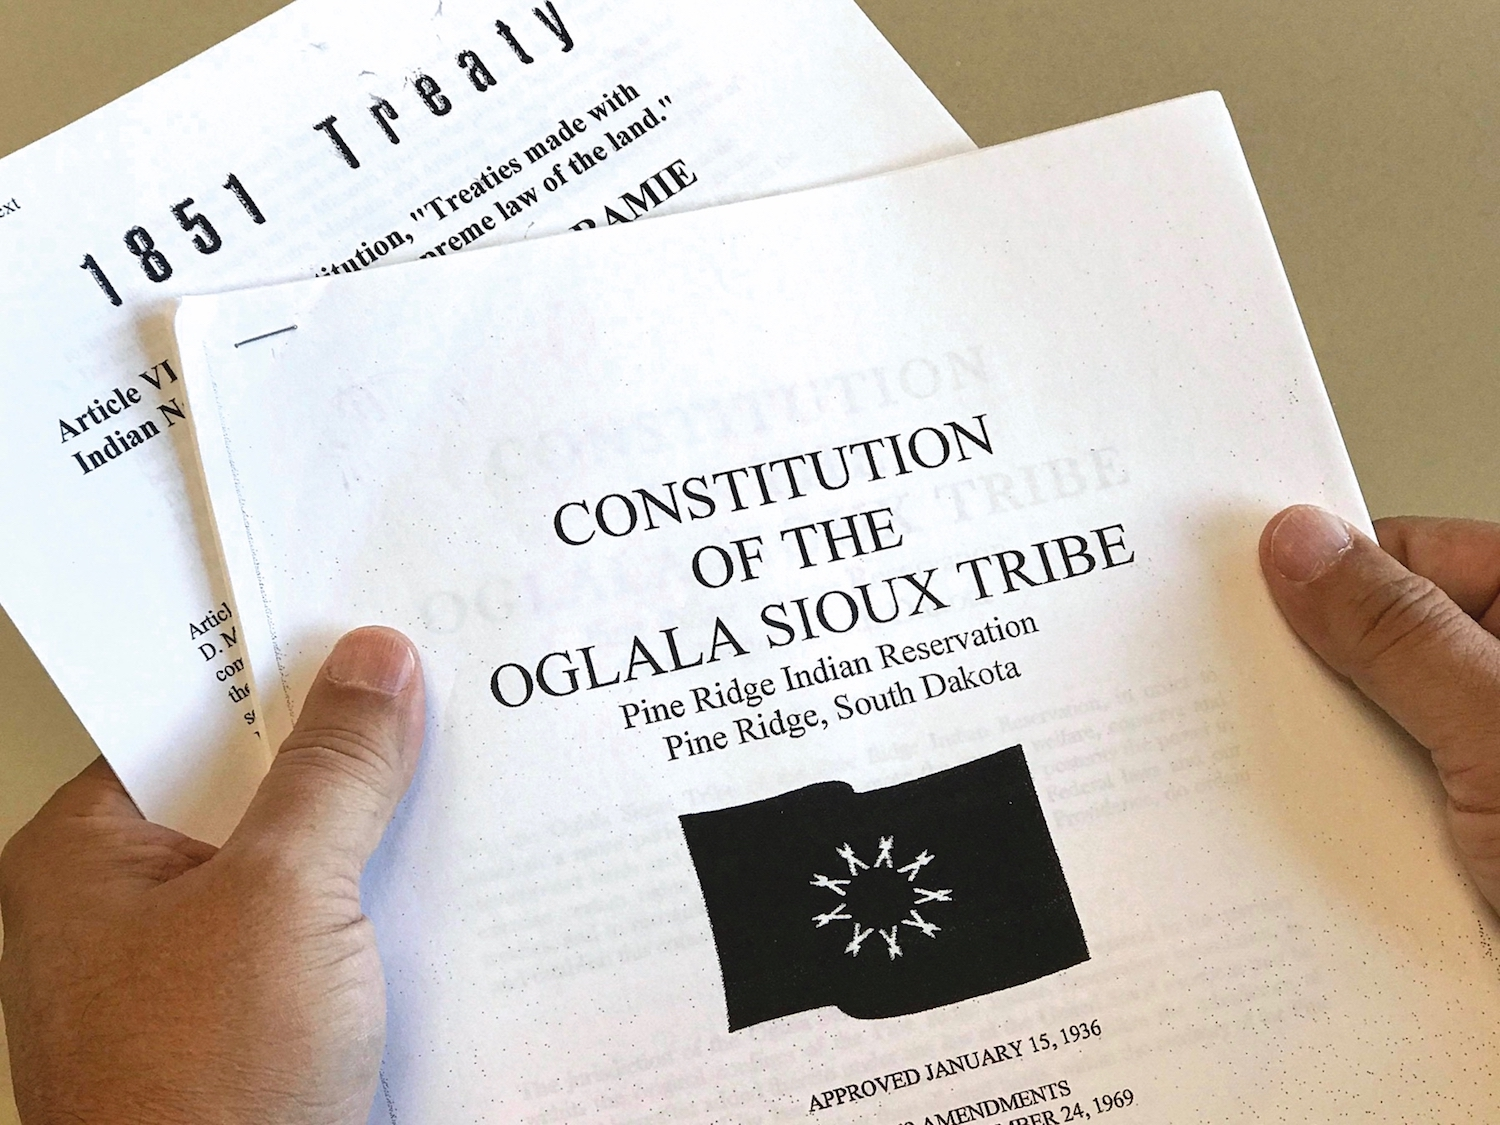 Ivan Star Comes Out: So-called 'tribal' constitution keeps our people down